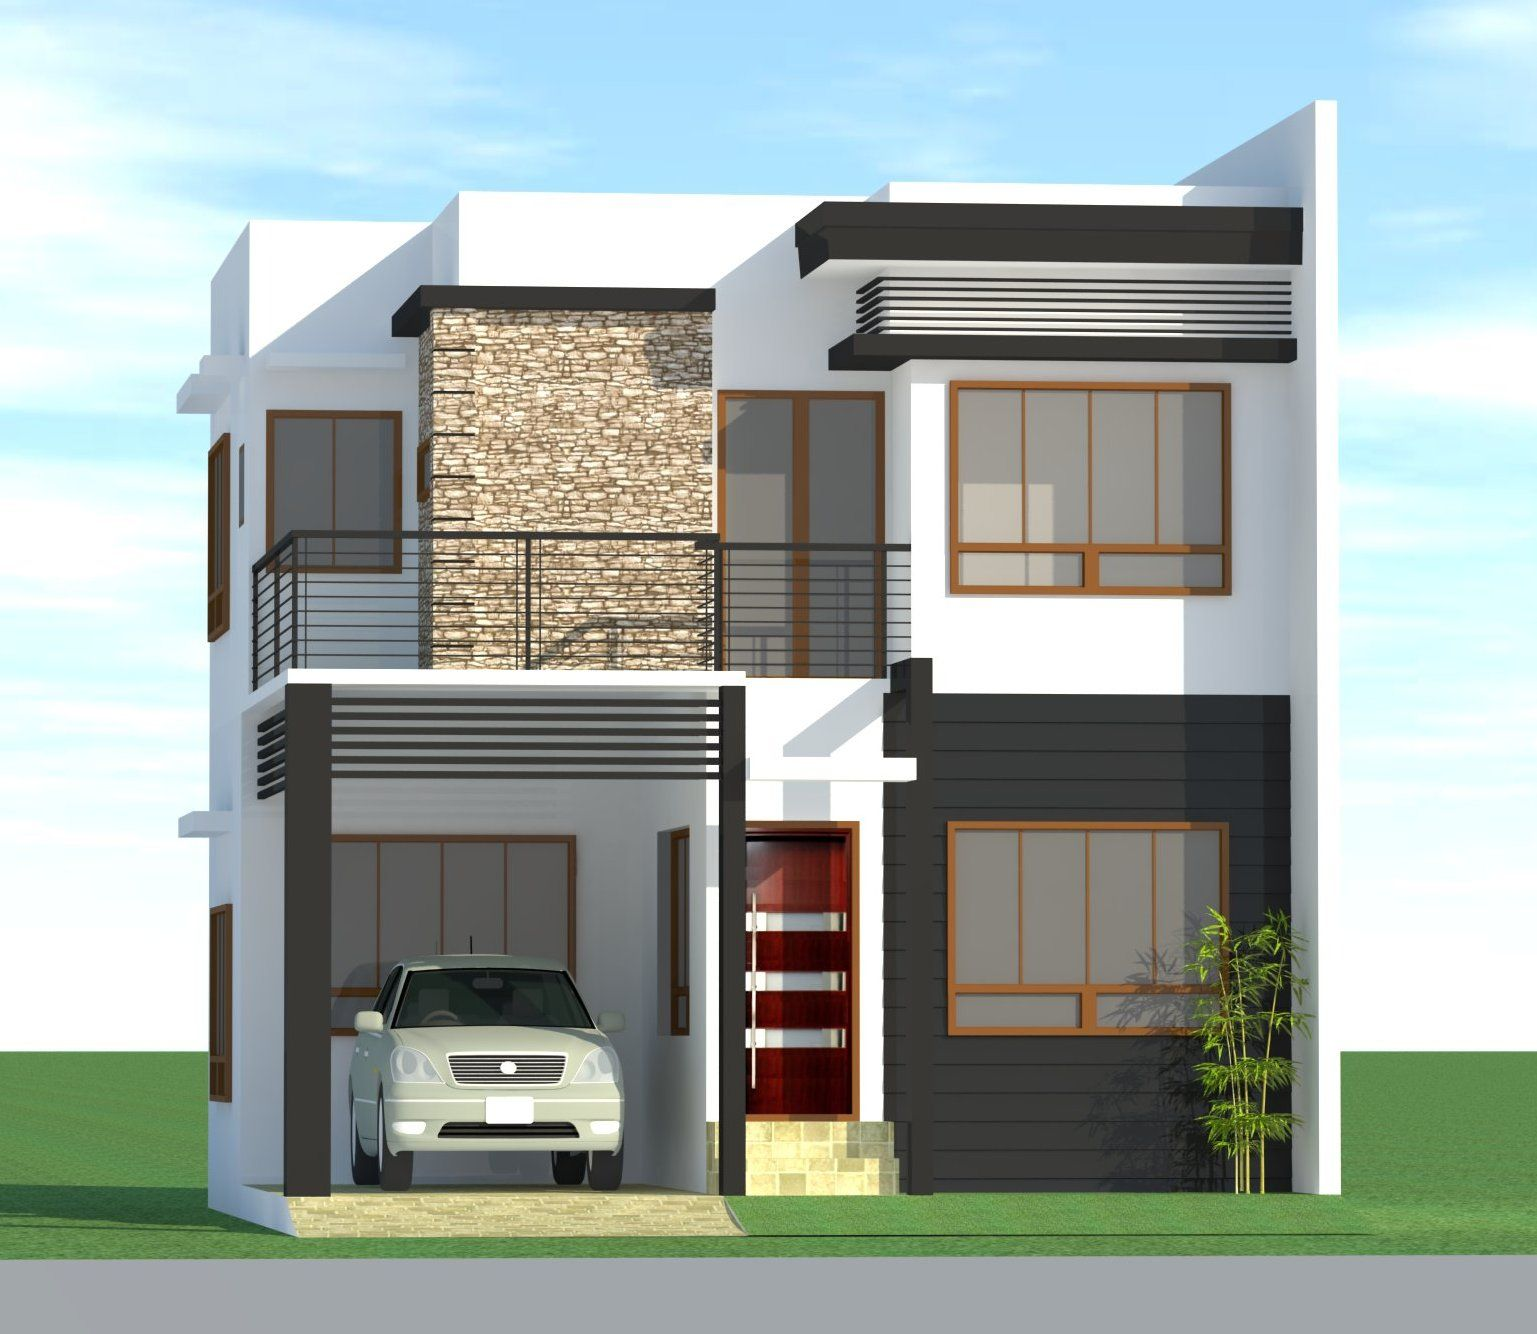 Philippines house design images 3 home design ideas for Front home design ideas